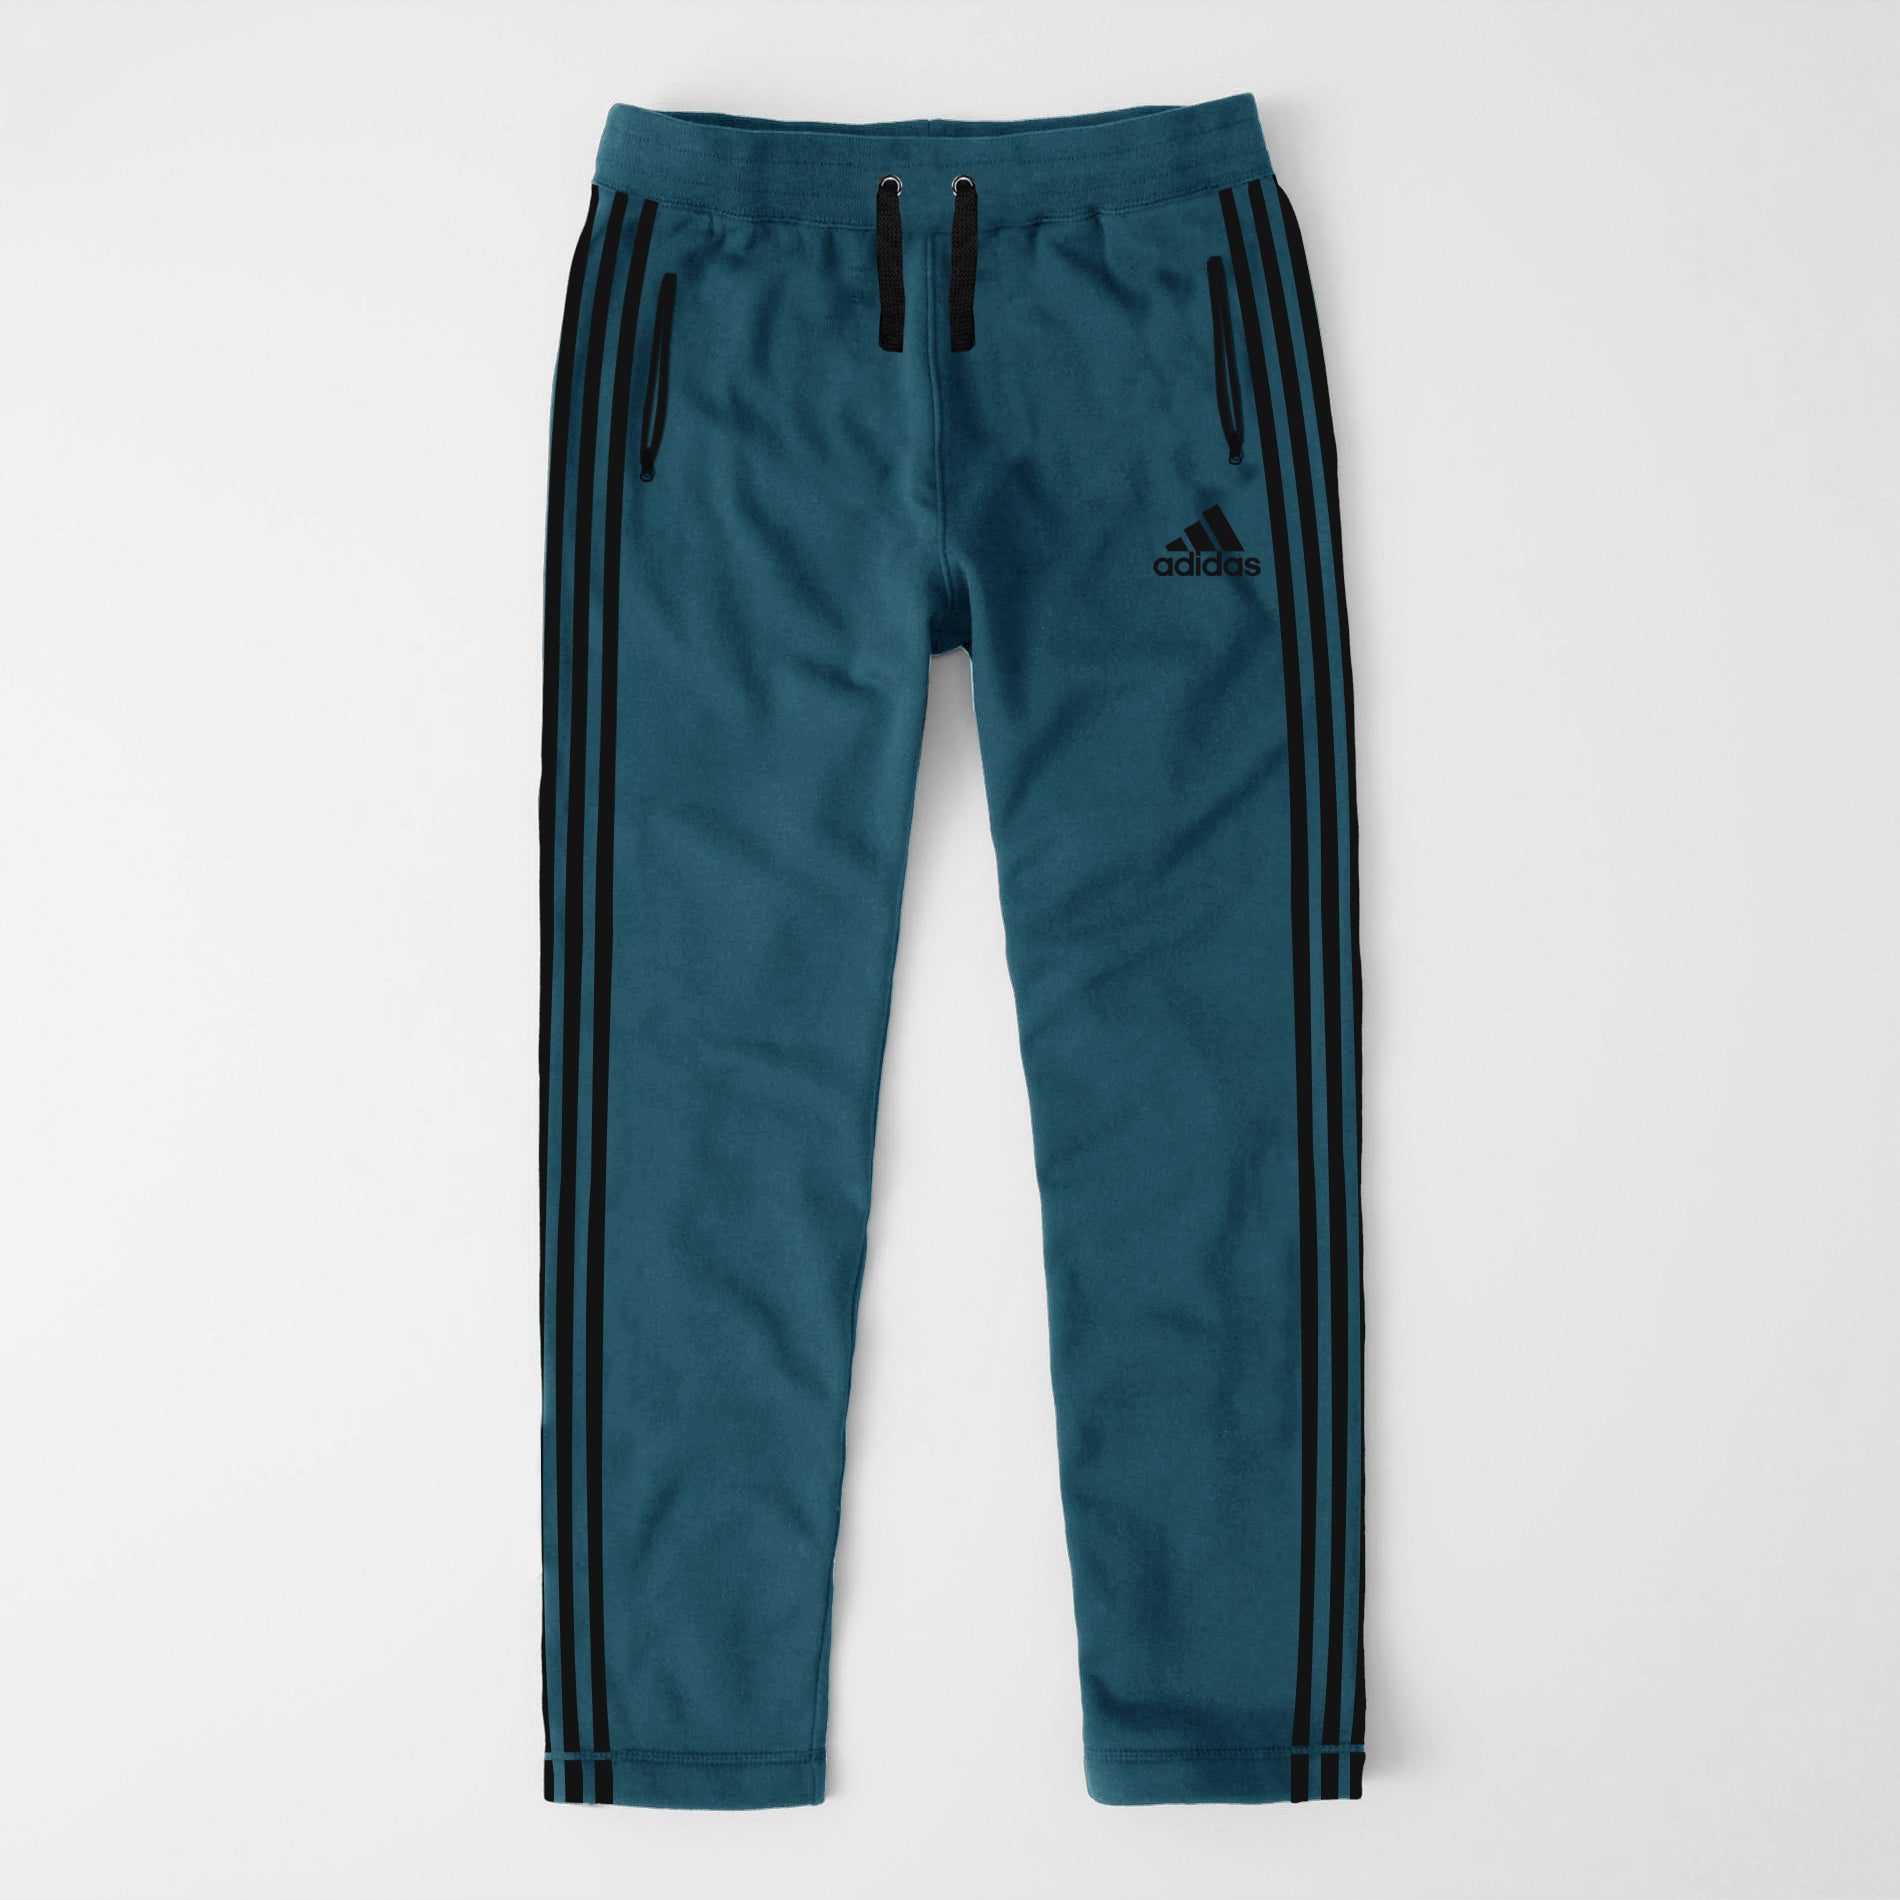 Adidas Single Jersey Regular Fit Trouser For Men-Cyan With Black Stripes-NA9360